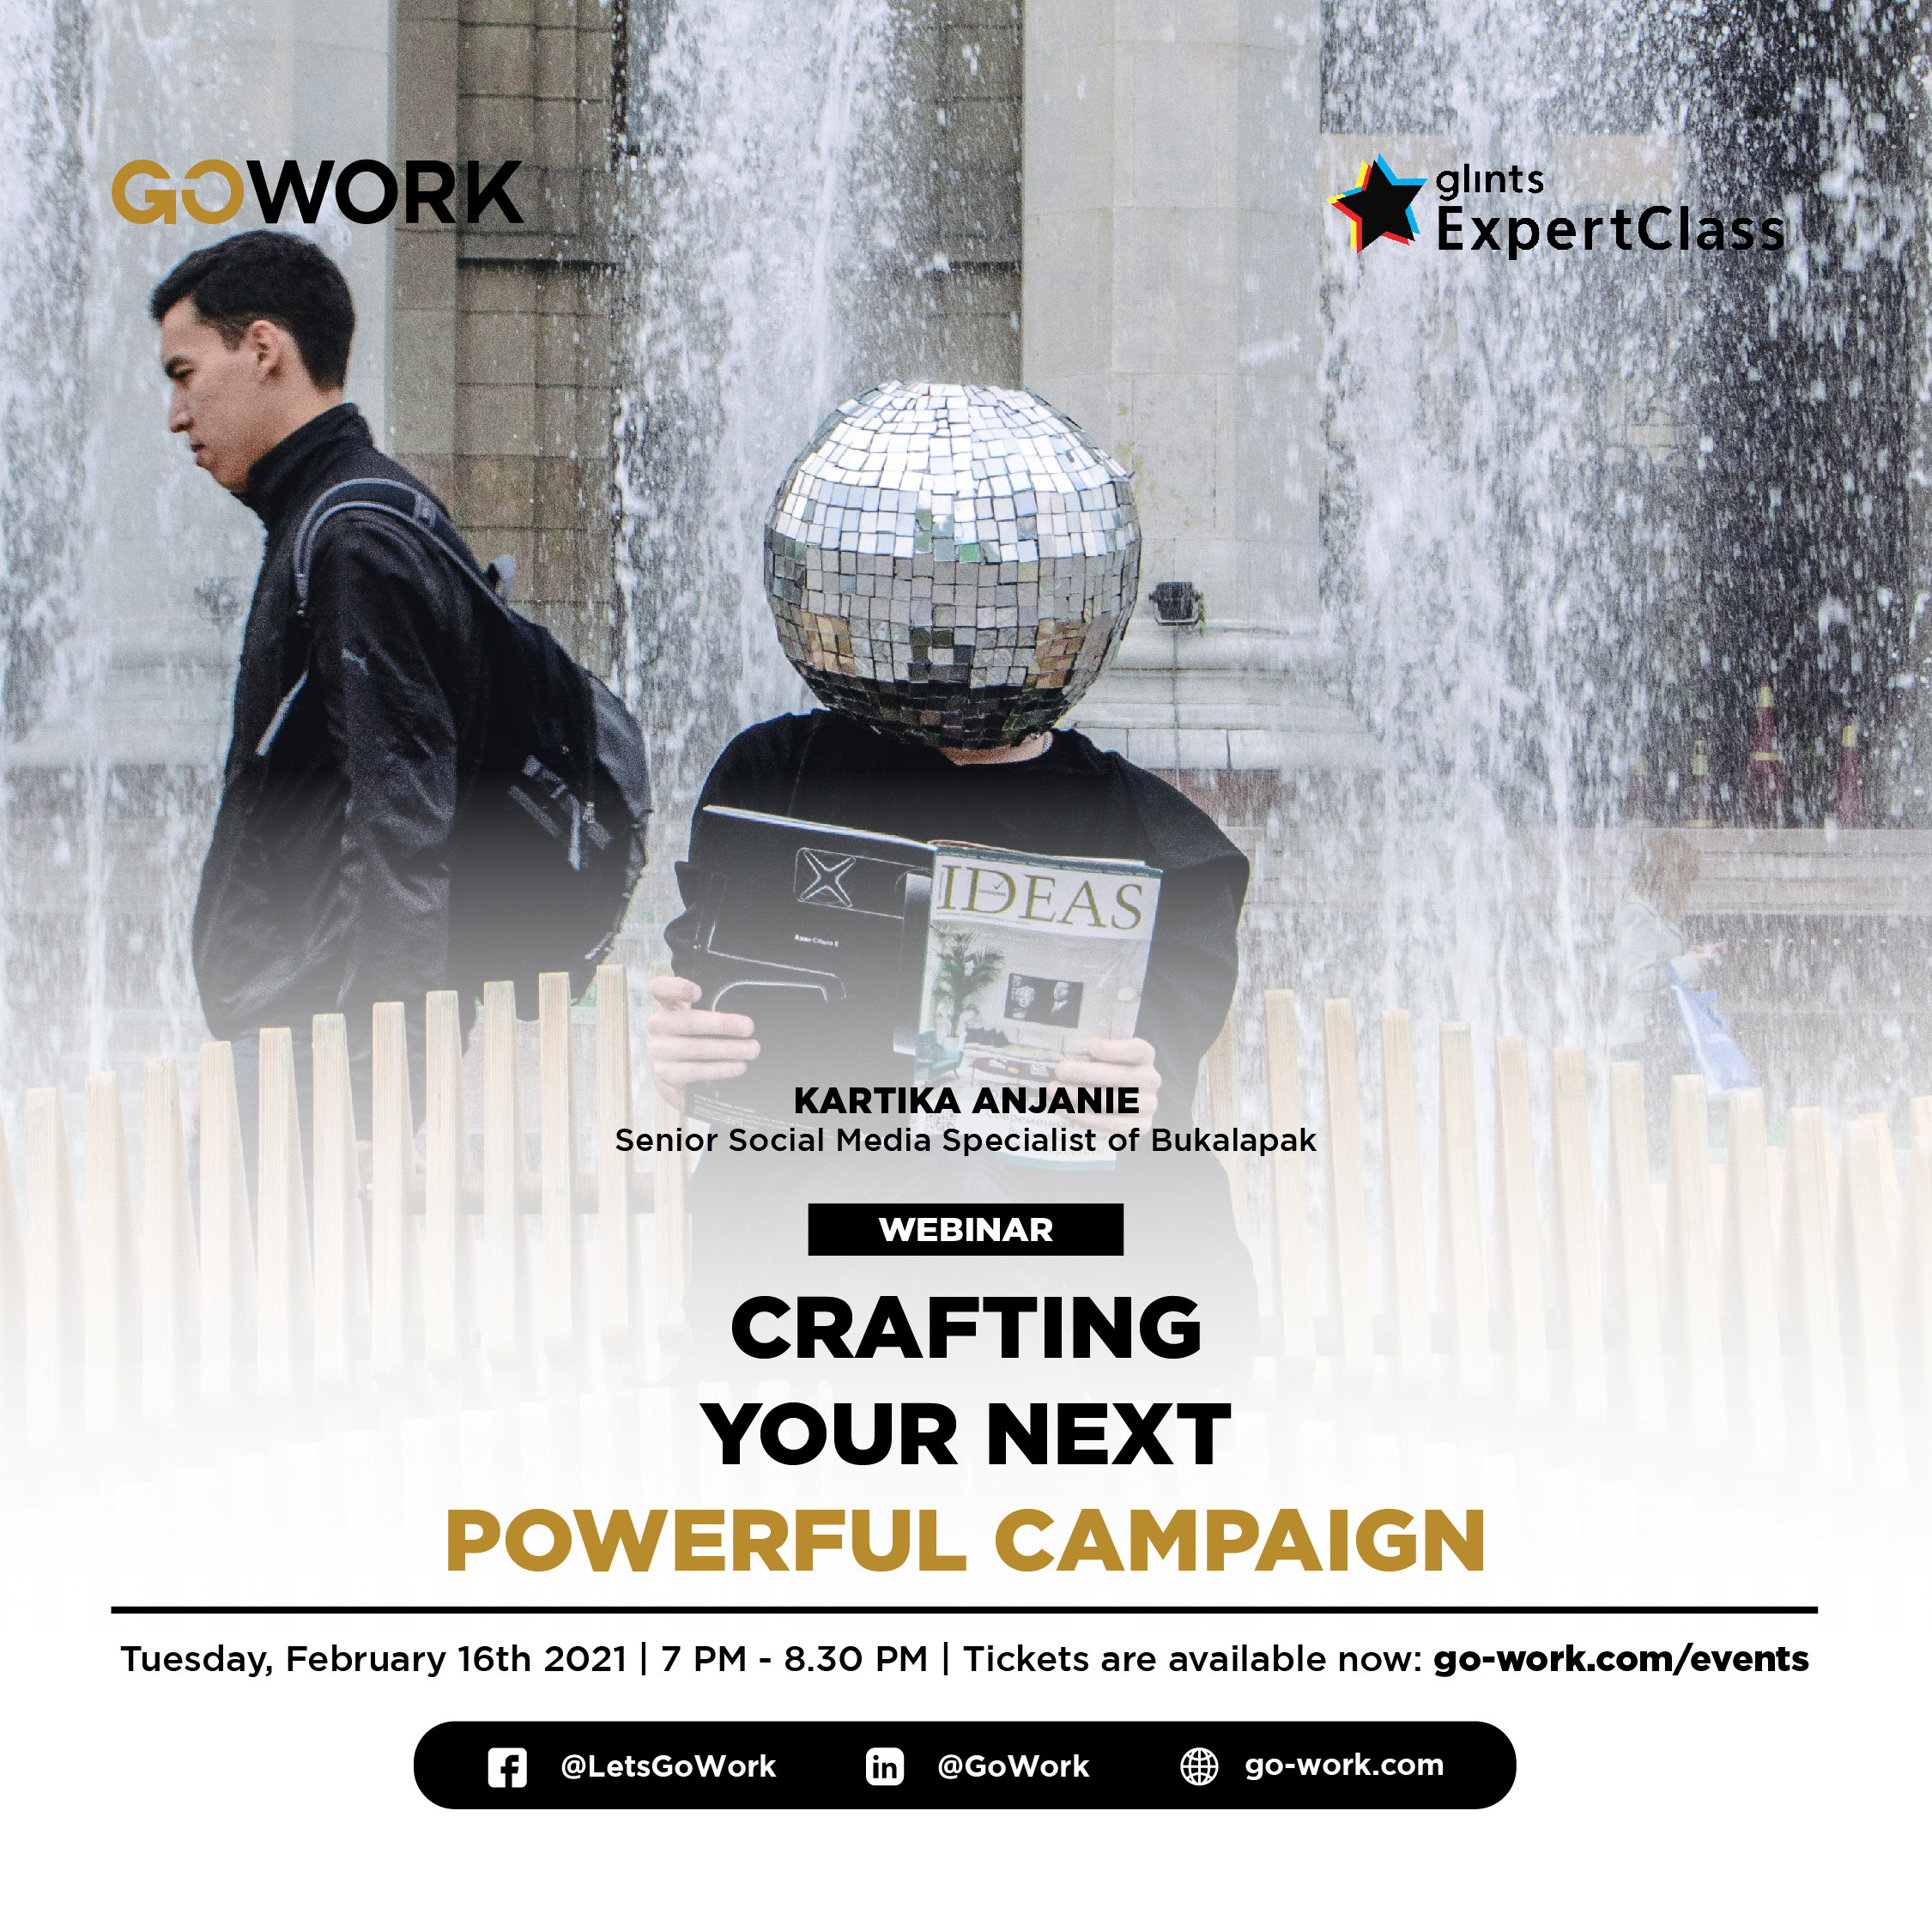 Crafting Your Next Powerful Campaign